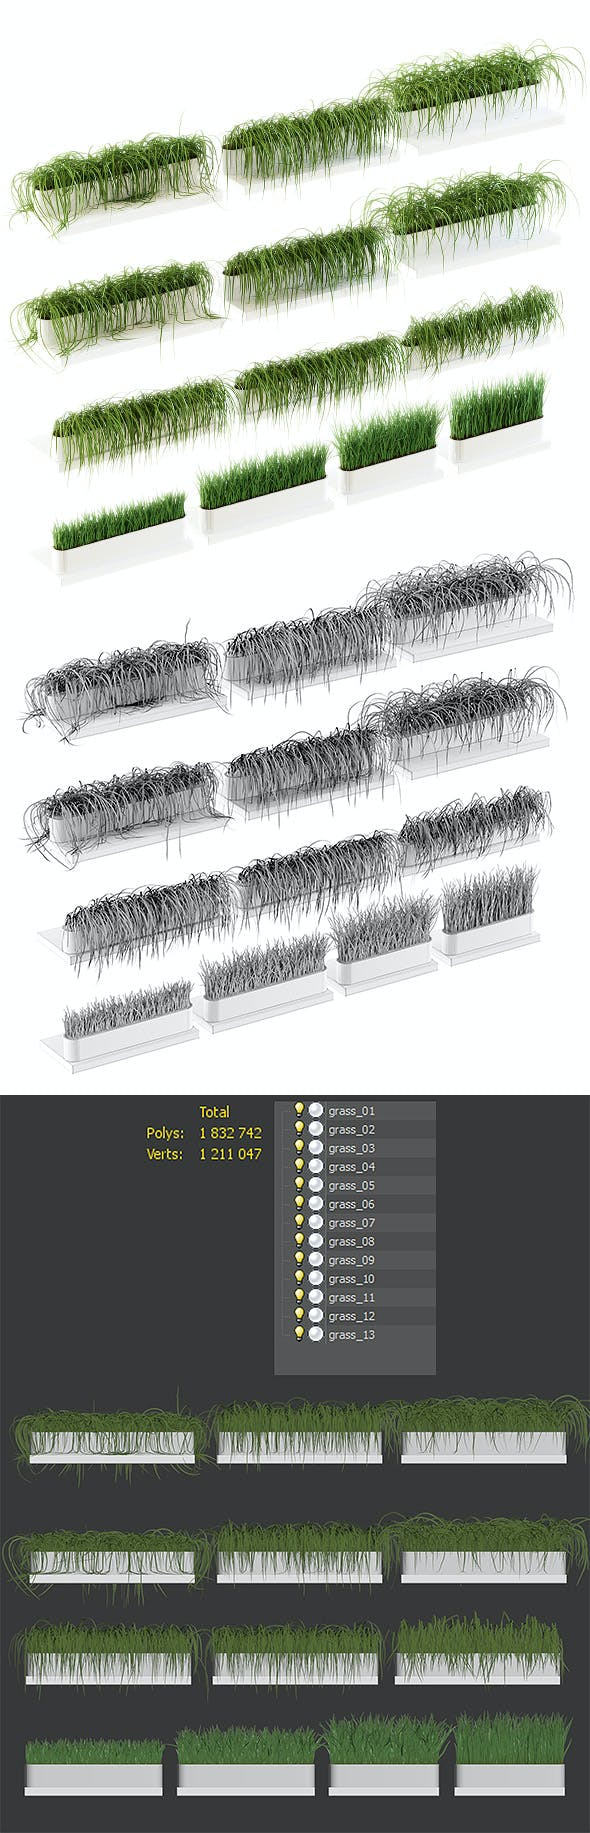 Grass on the shelves of 13 models - 3DOcean Item for Sale